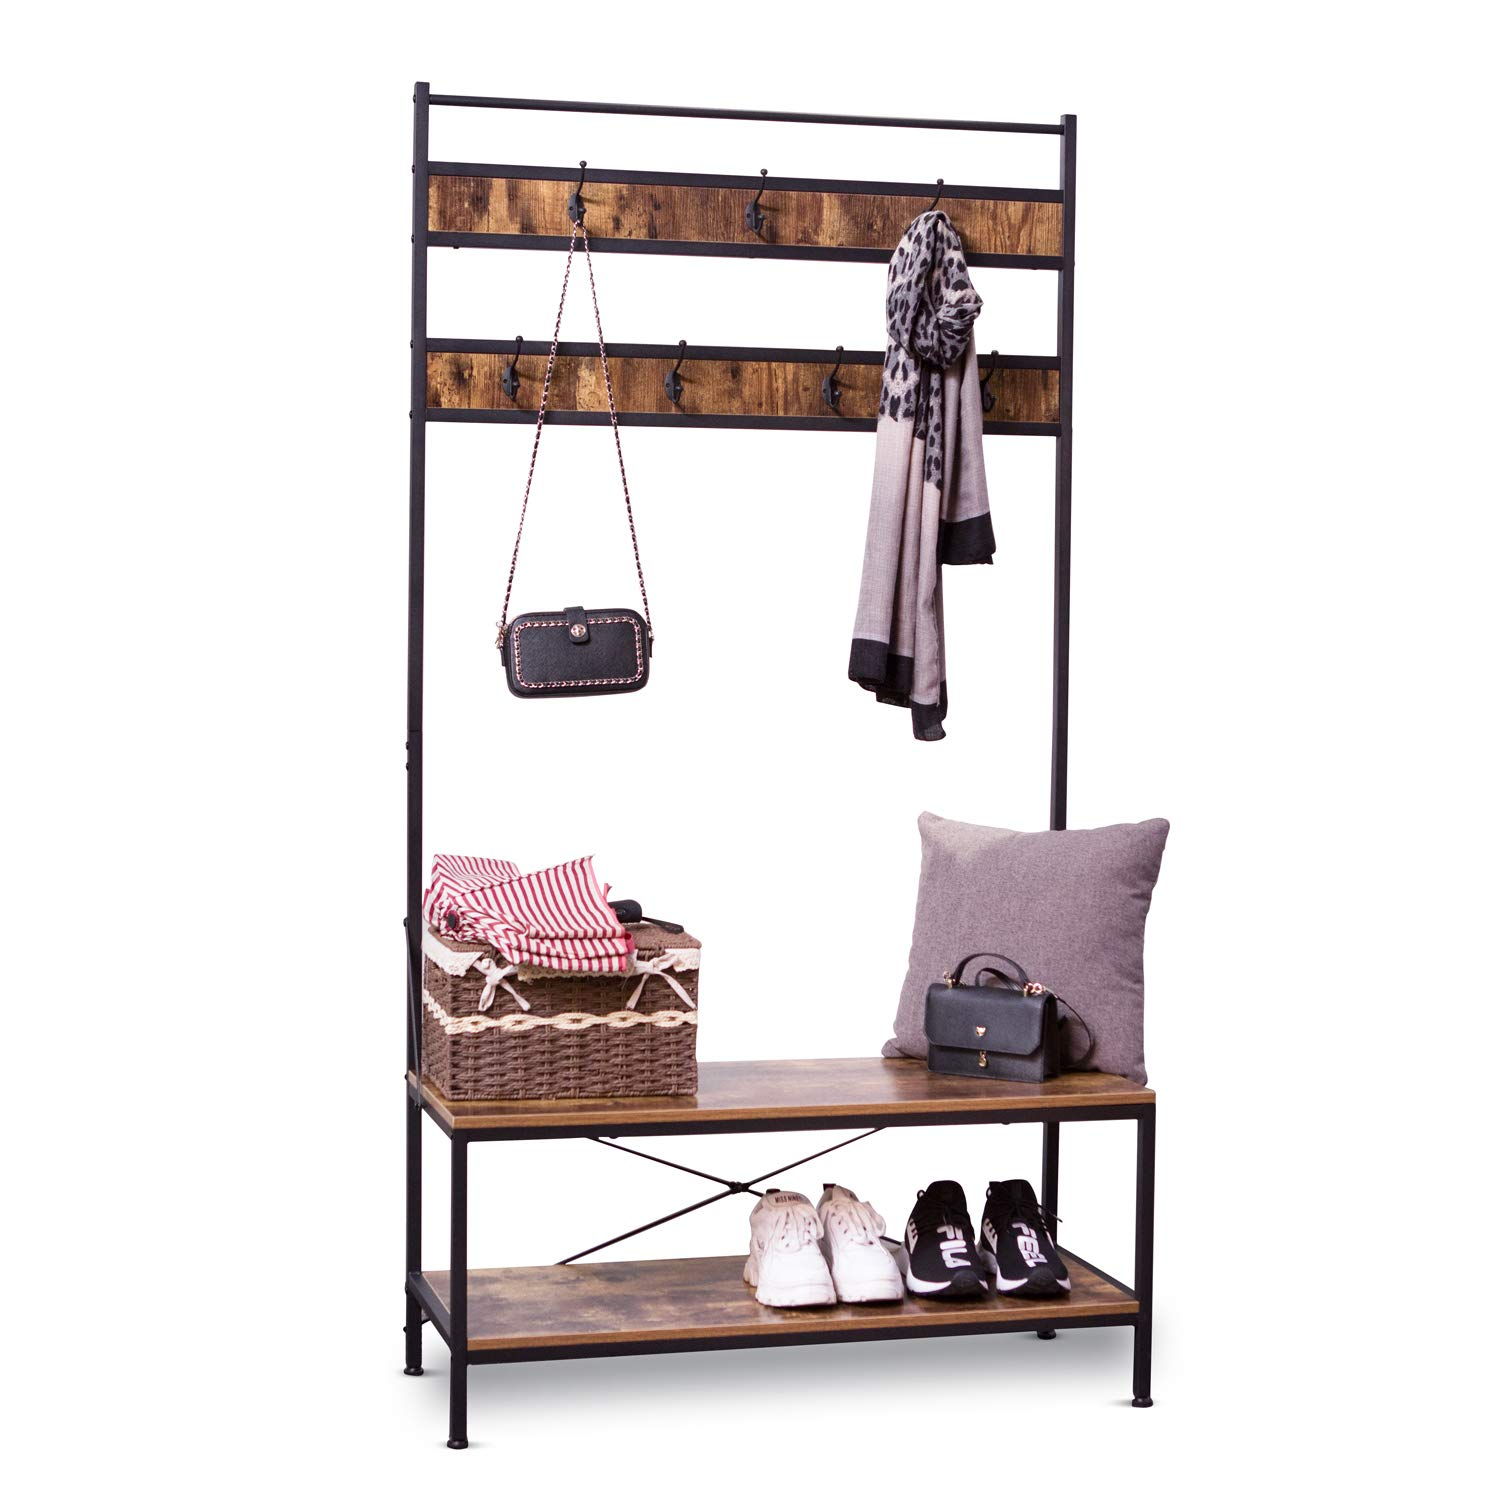 Enjoyable Ironck Coat Rack Free Standing Hall Tree Industrial Entryway Organizer Coat Stand With Storage Bench Mdf Board Multifunctional Sturdy Metal Frame Gmtry Best Dining Table And Chair Ideas Images Gmtryco